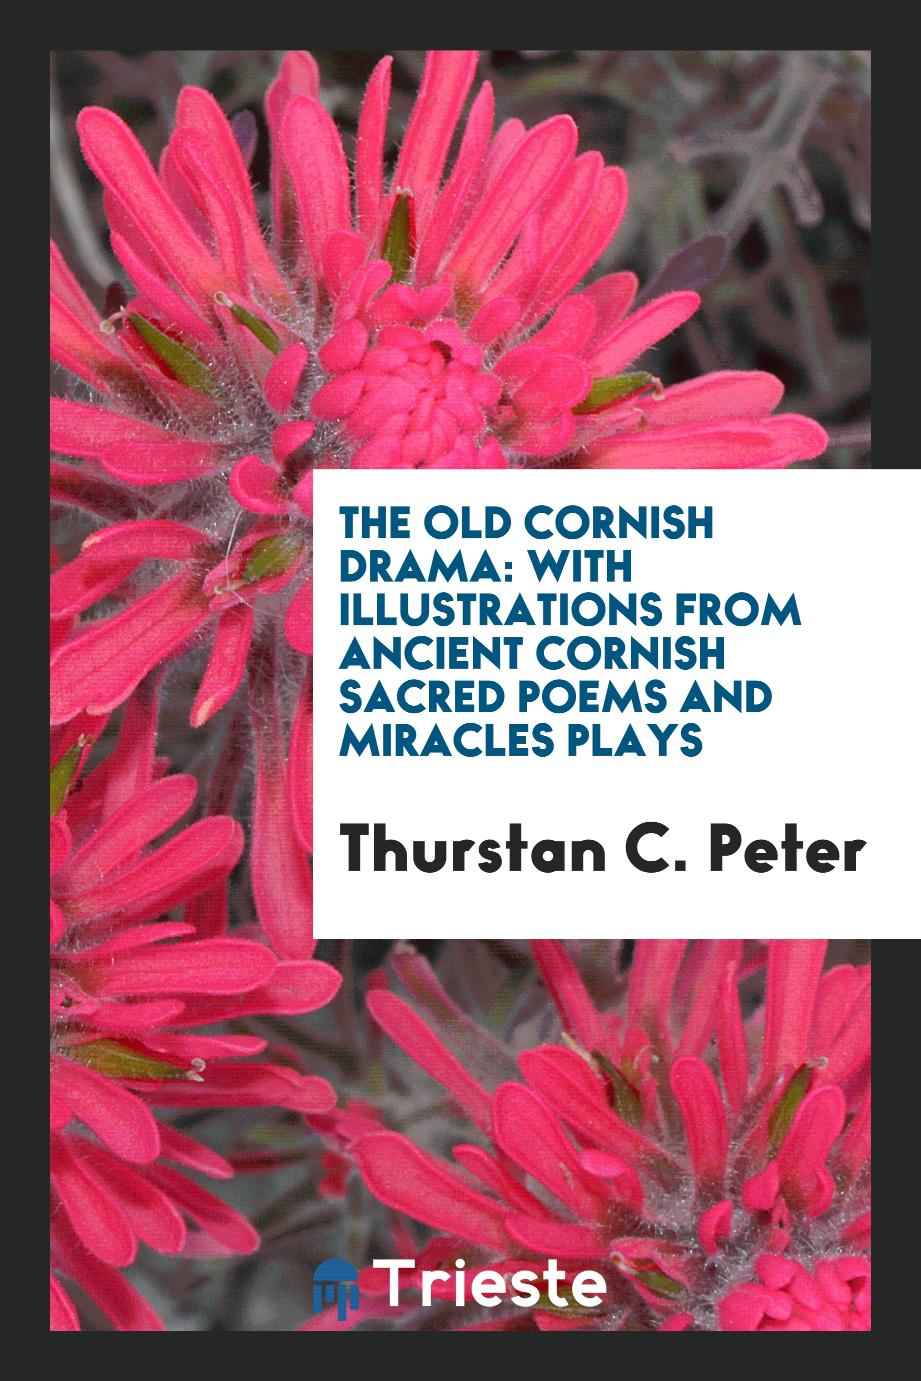 The Old Cornish Drama: With Illustrations from Ancient Cornish Sacred Poems and Miracles Plays